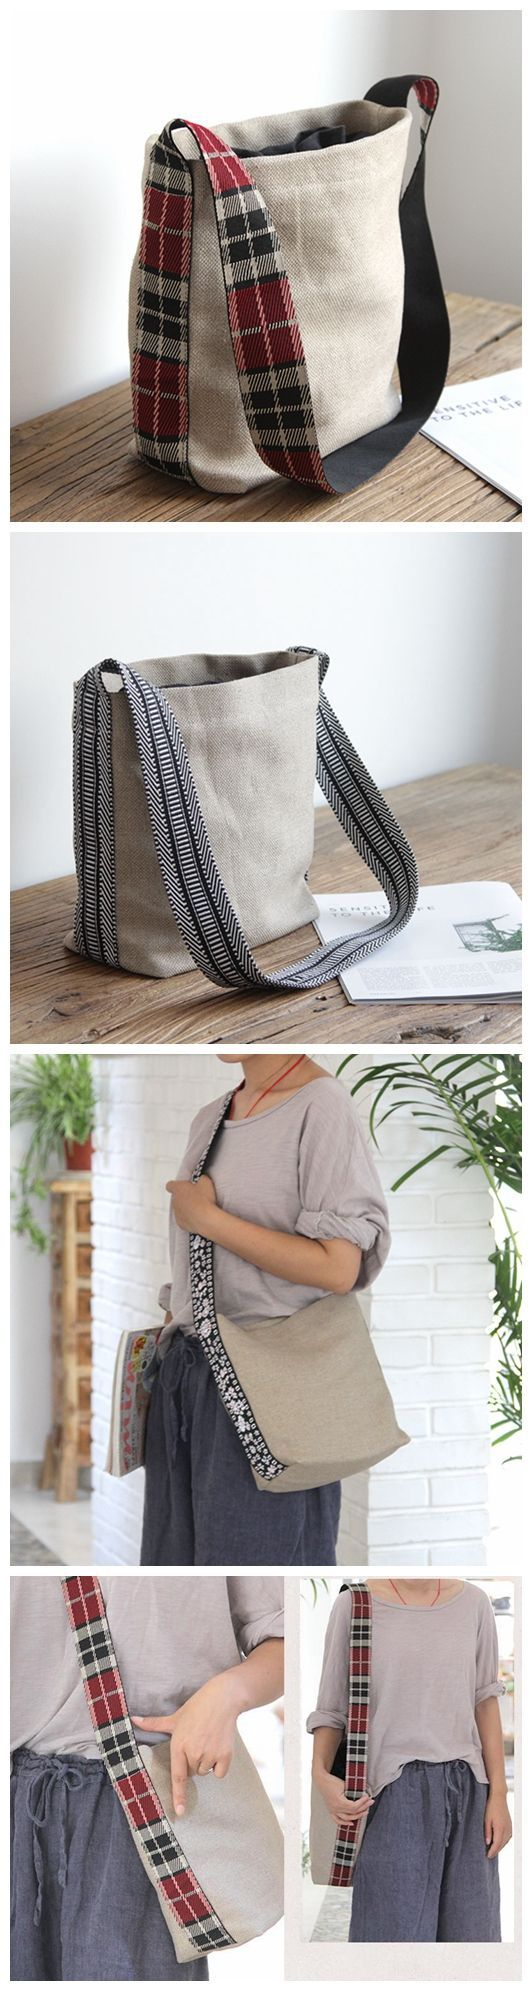 Canvas shoulder bag, handmade bag, bridesmaid gift, casual daily canvas bag, vintage bag, popular